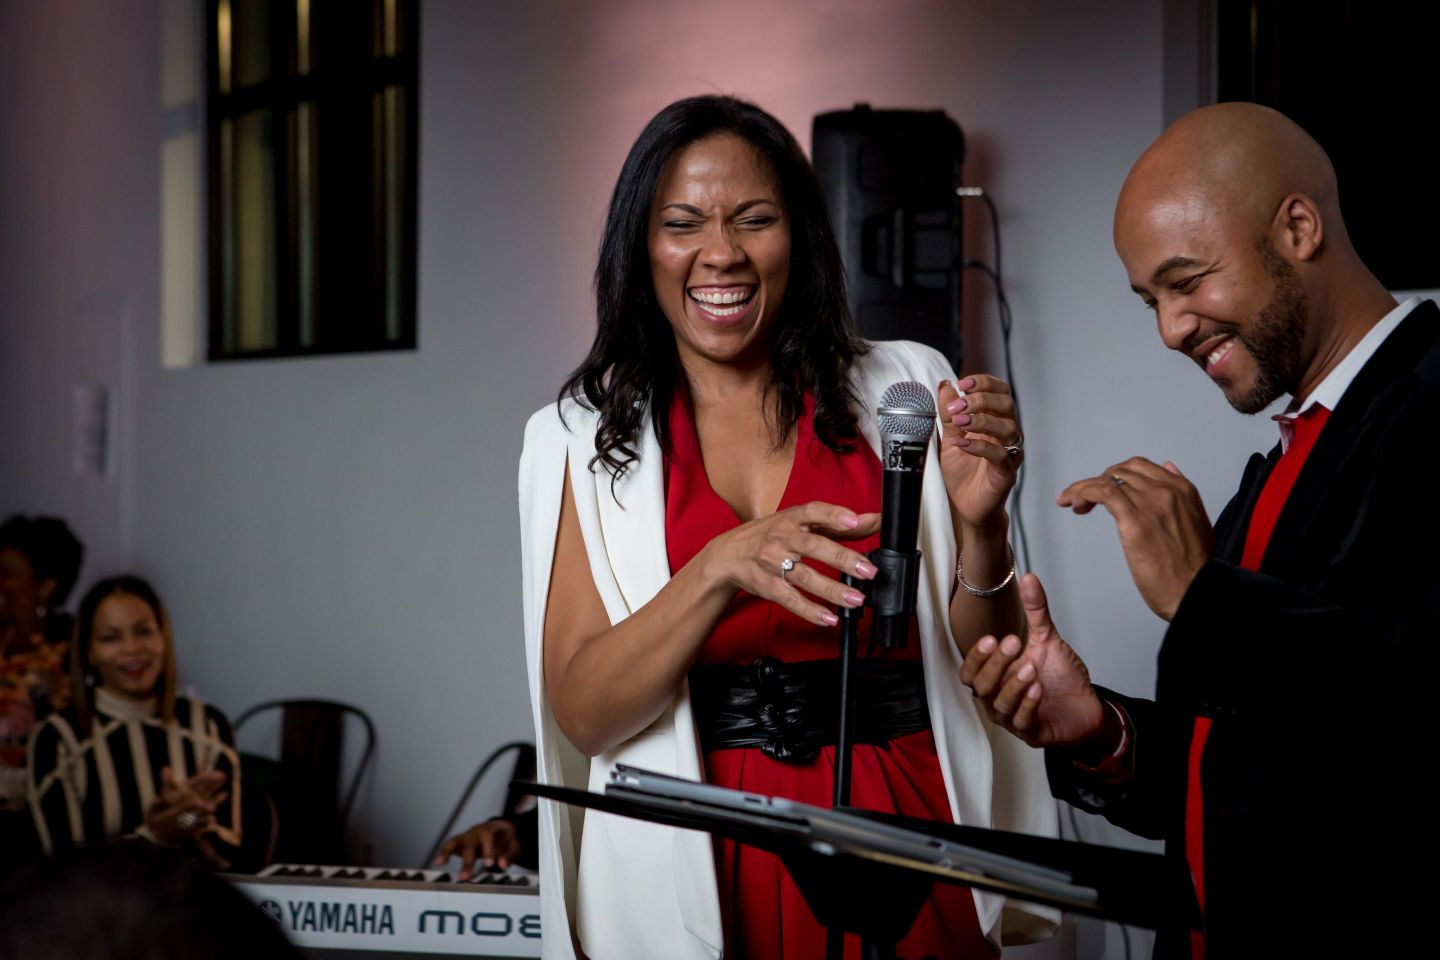 Society414-407-1440x960 Black Owned Date Night Company Gives Tips on 3 Unique Date Night Experiences